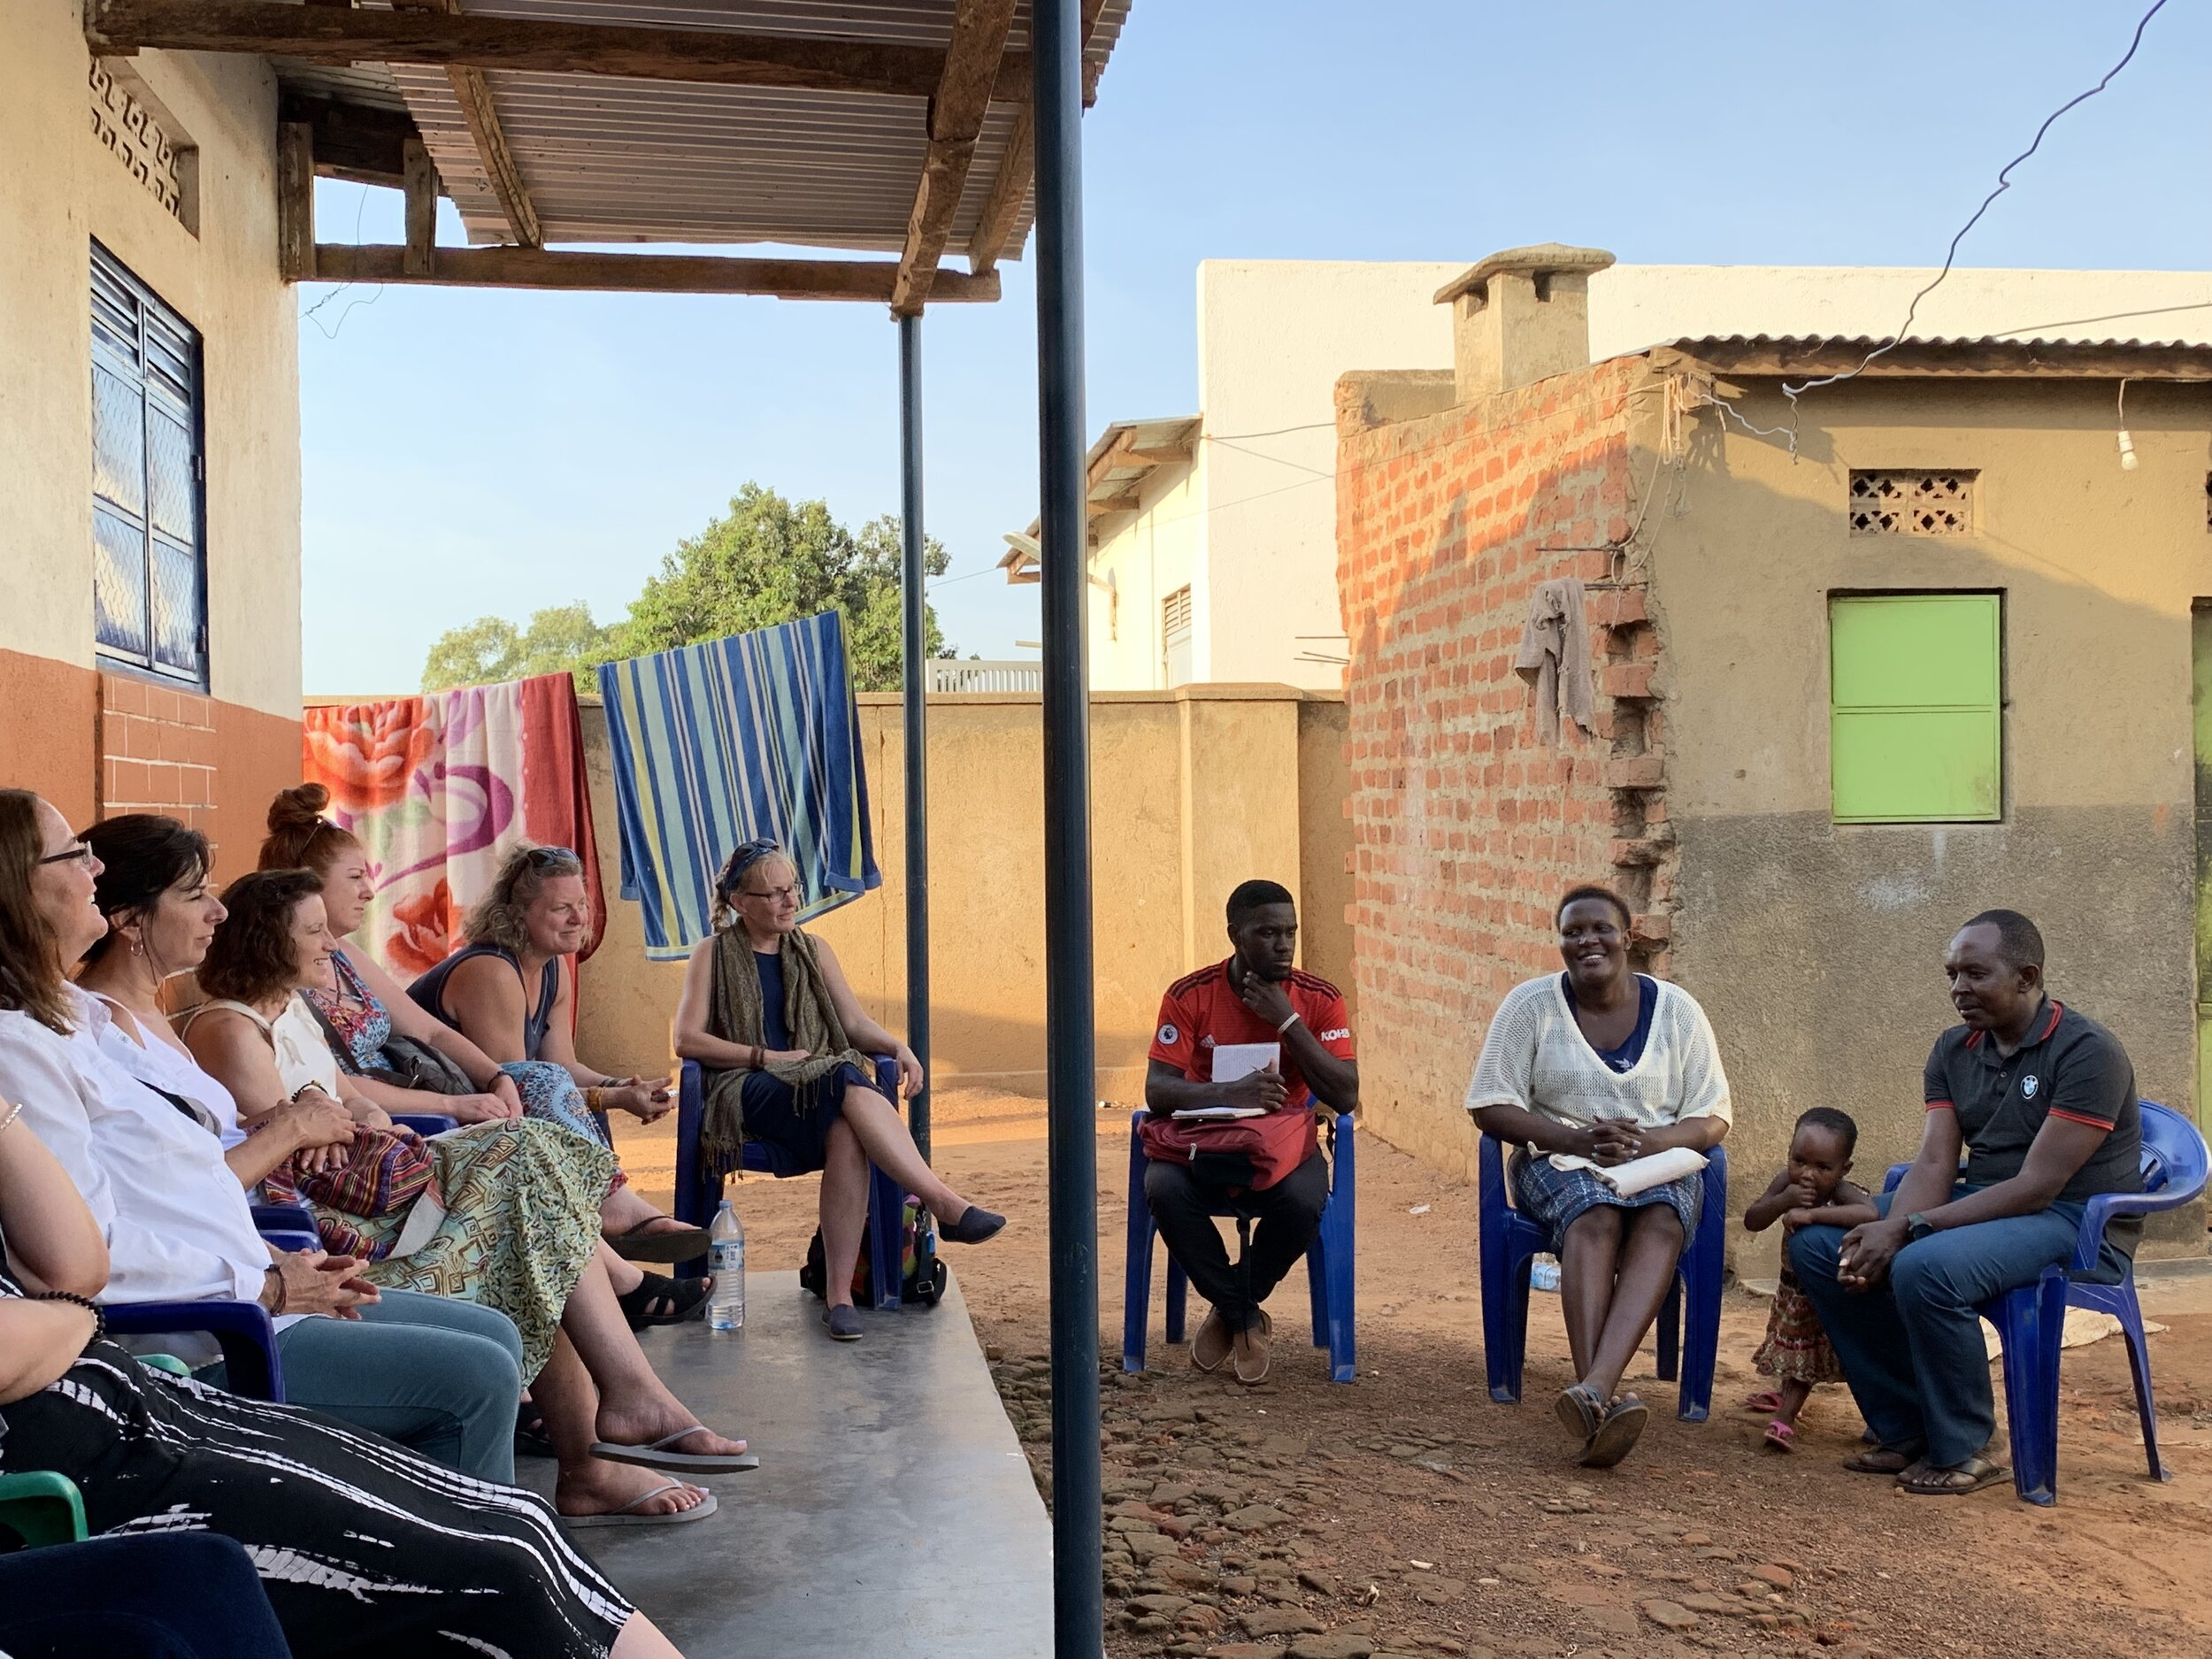 Country Director Collines Angwech brought our 2019 Cultural Immersion Trip participants to the home of Ayena Godfrey to learn more about the challenges faced by parents & small business owners in Namasale.